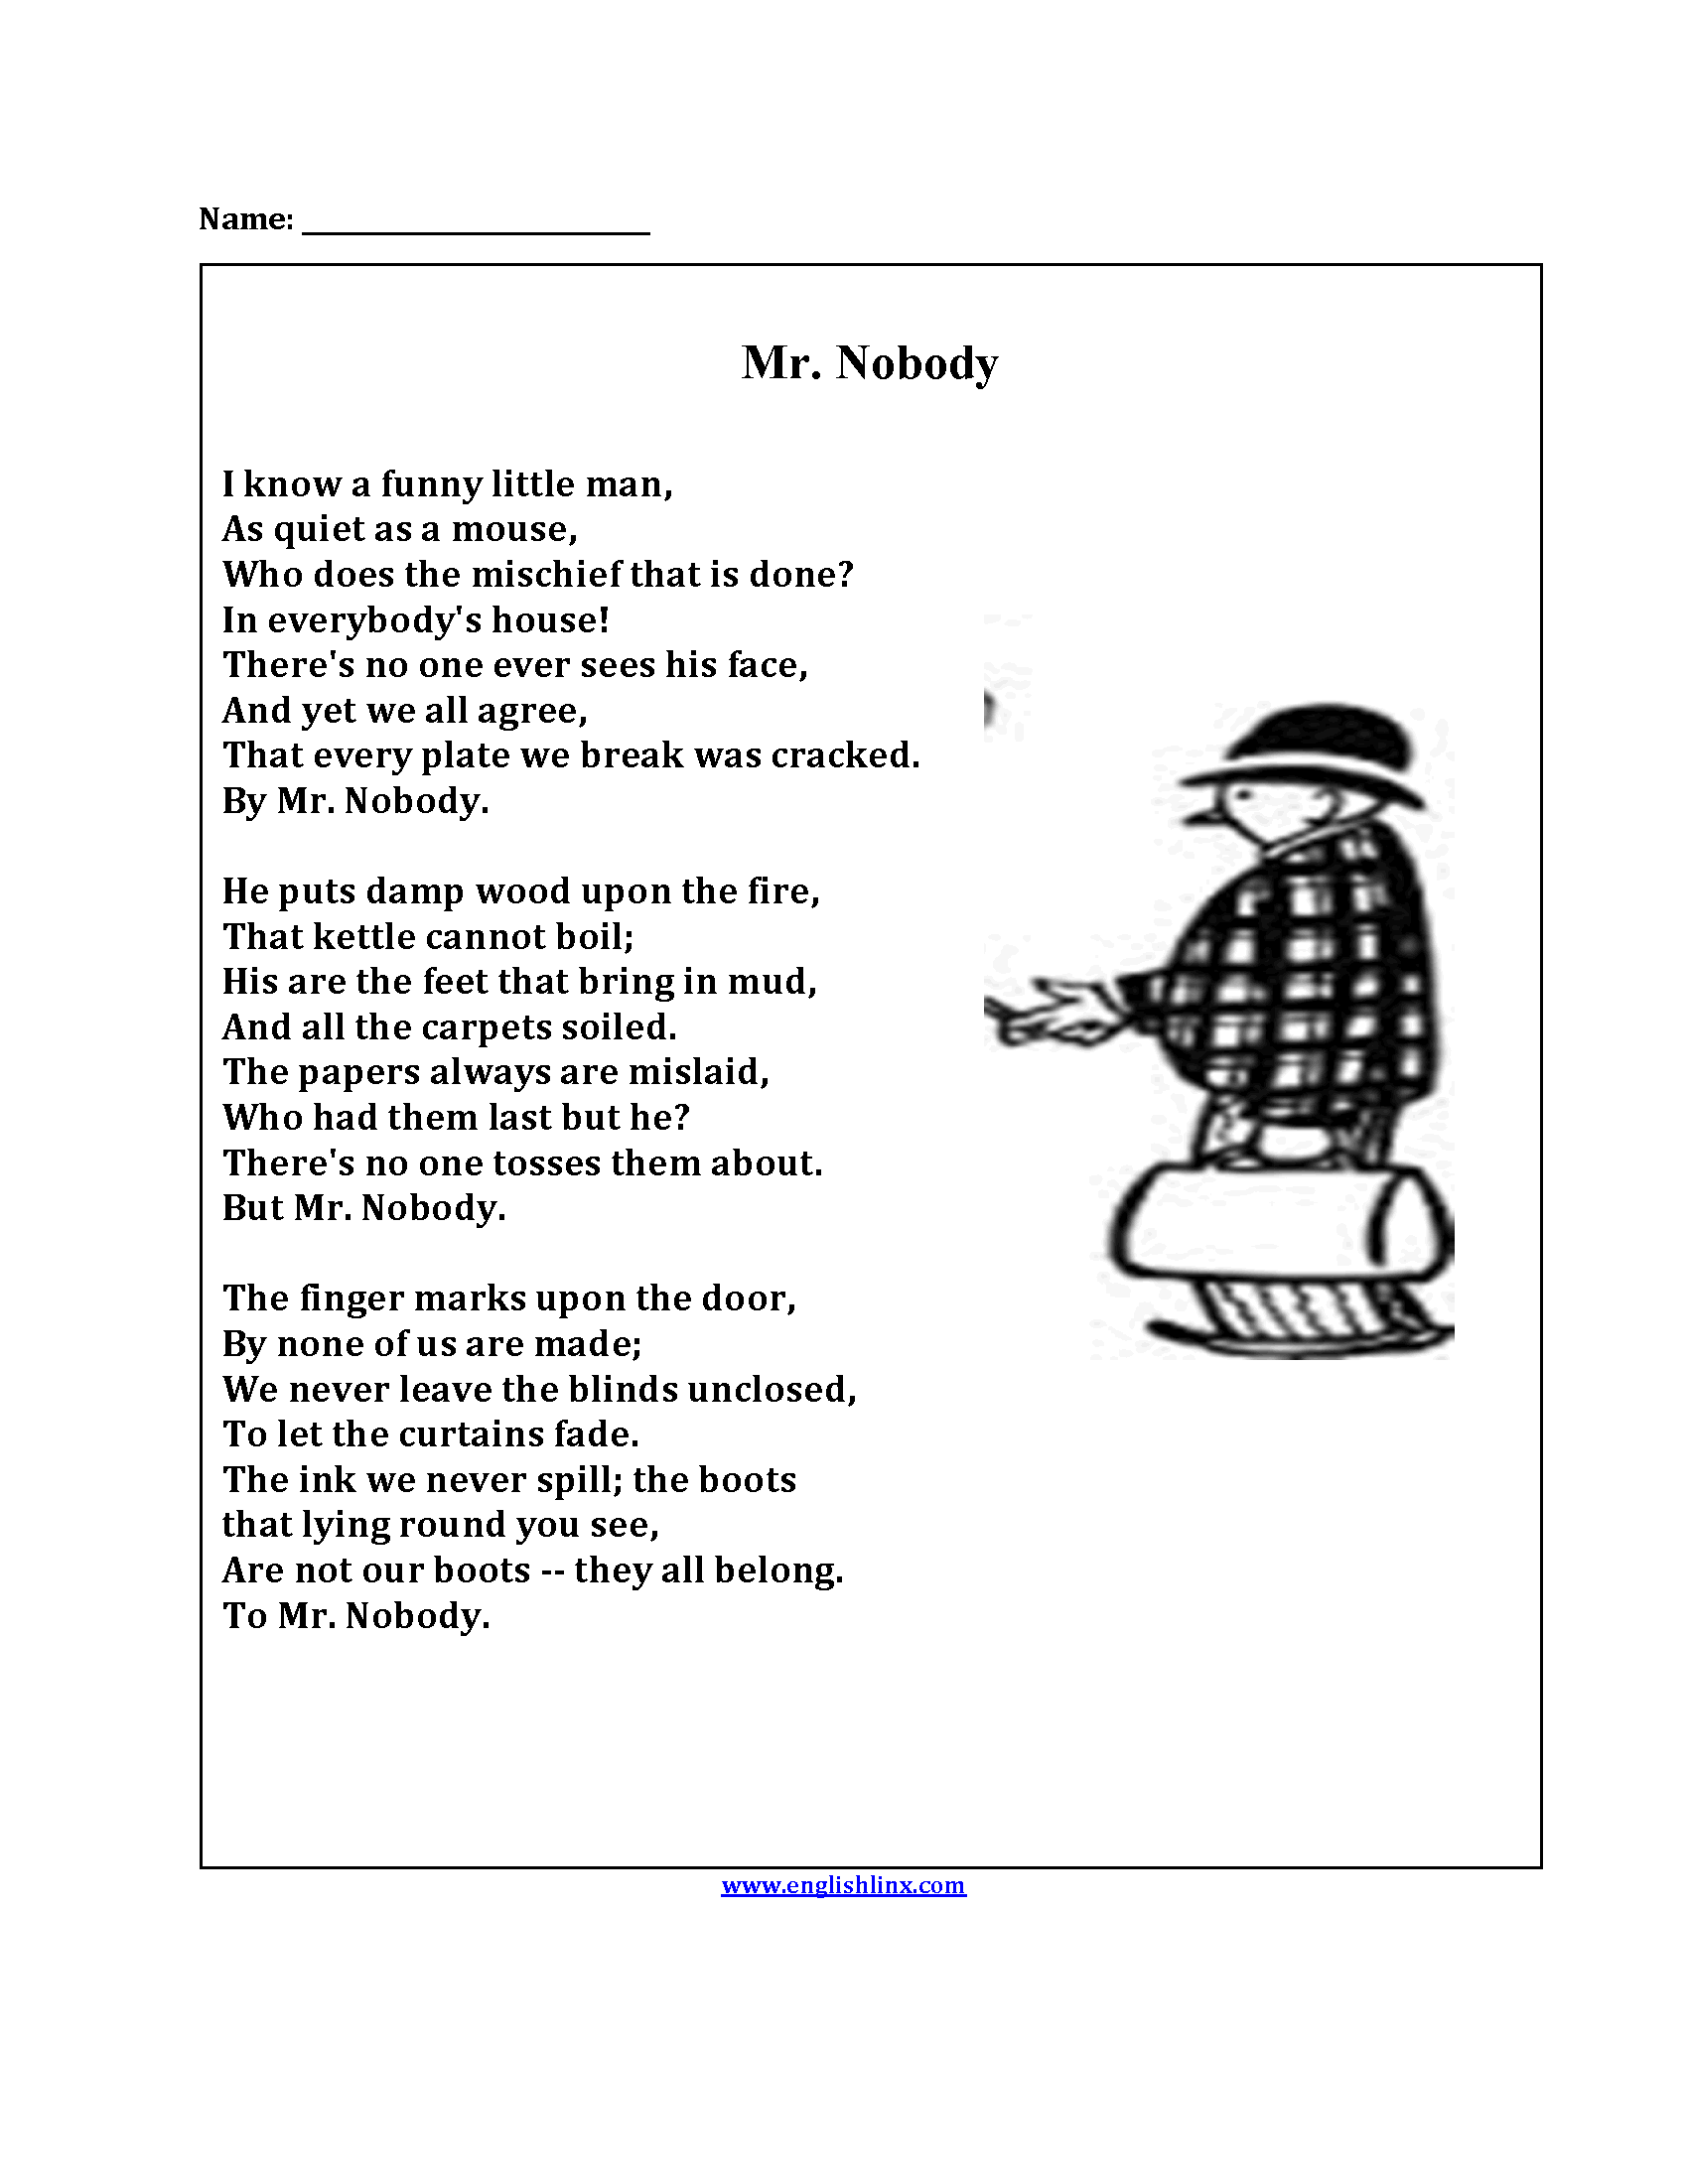 Mr Nobody Poetry Worksheets With Images